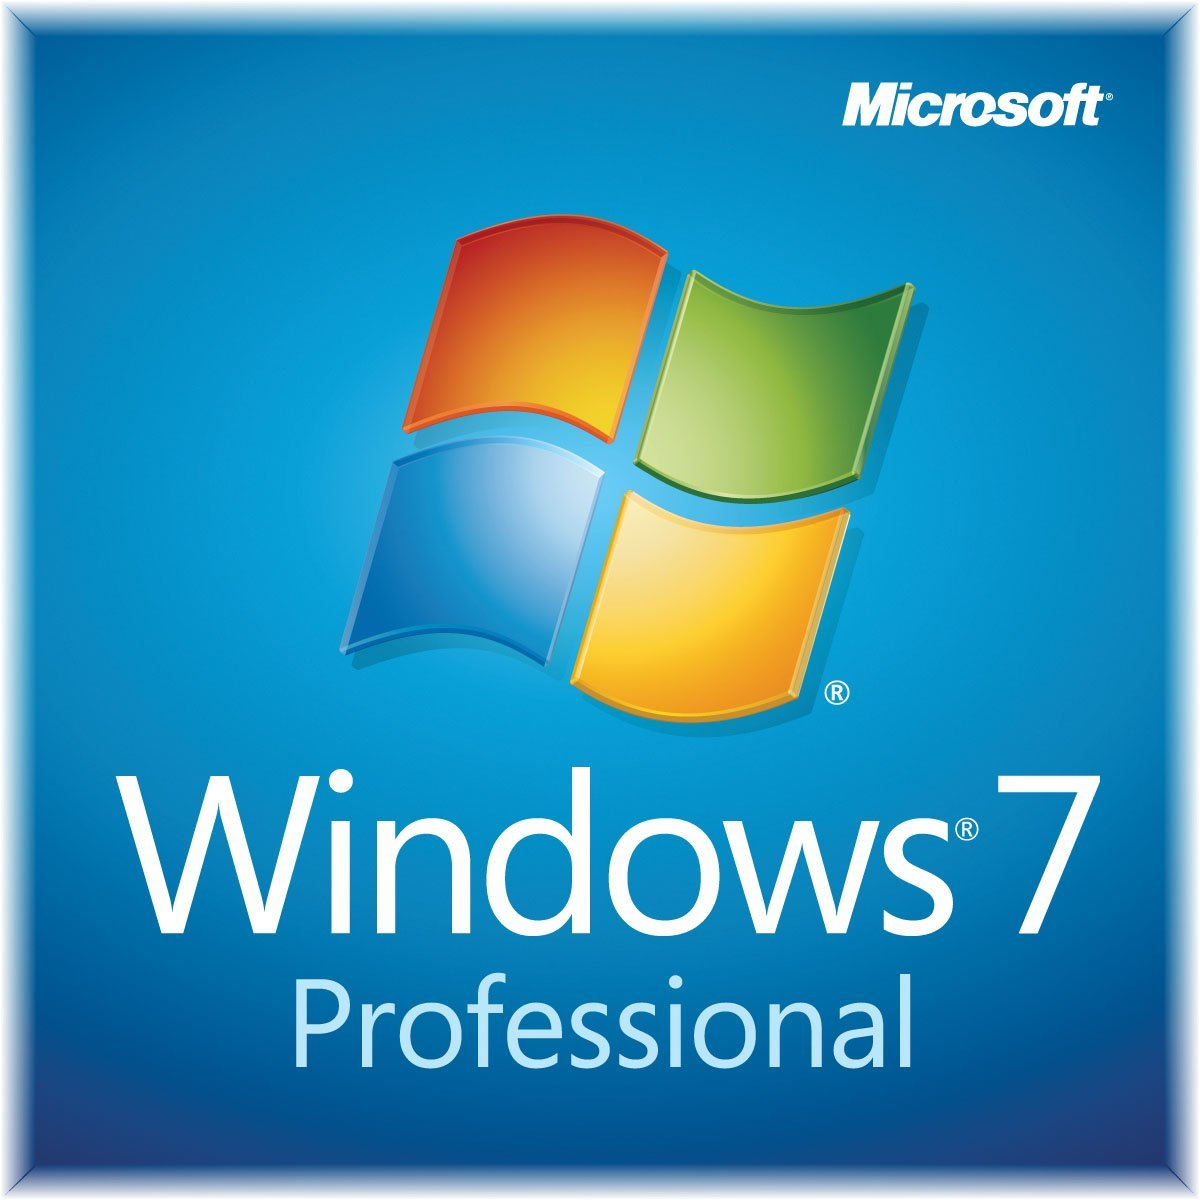 Windows 7 professional oem 64bit service pack 1 centre for Window 7 professional